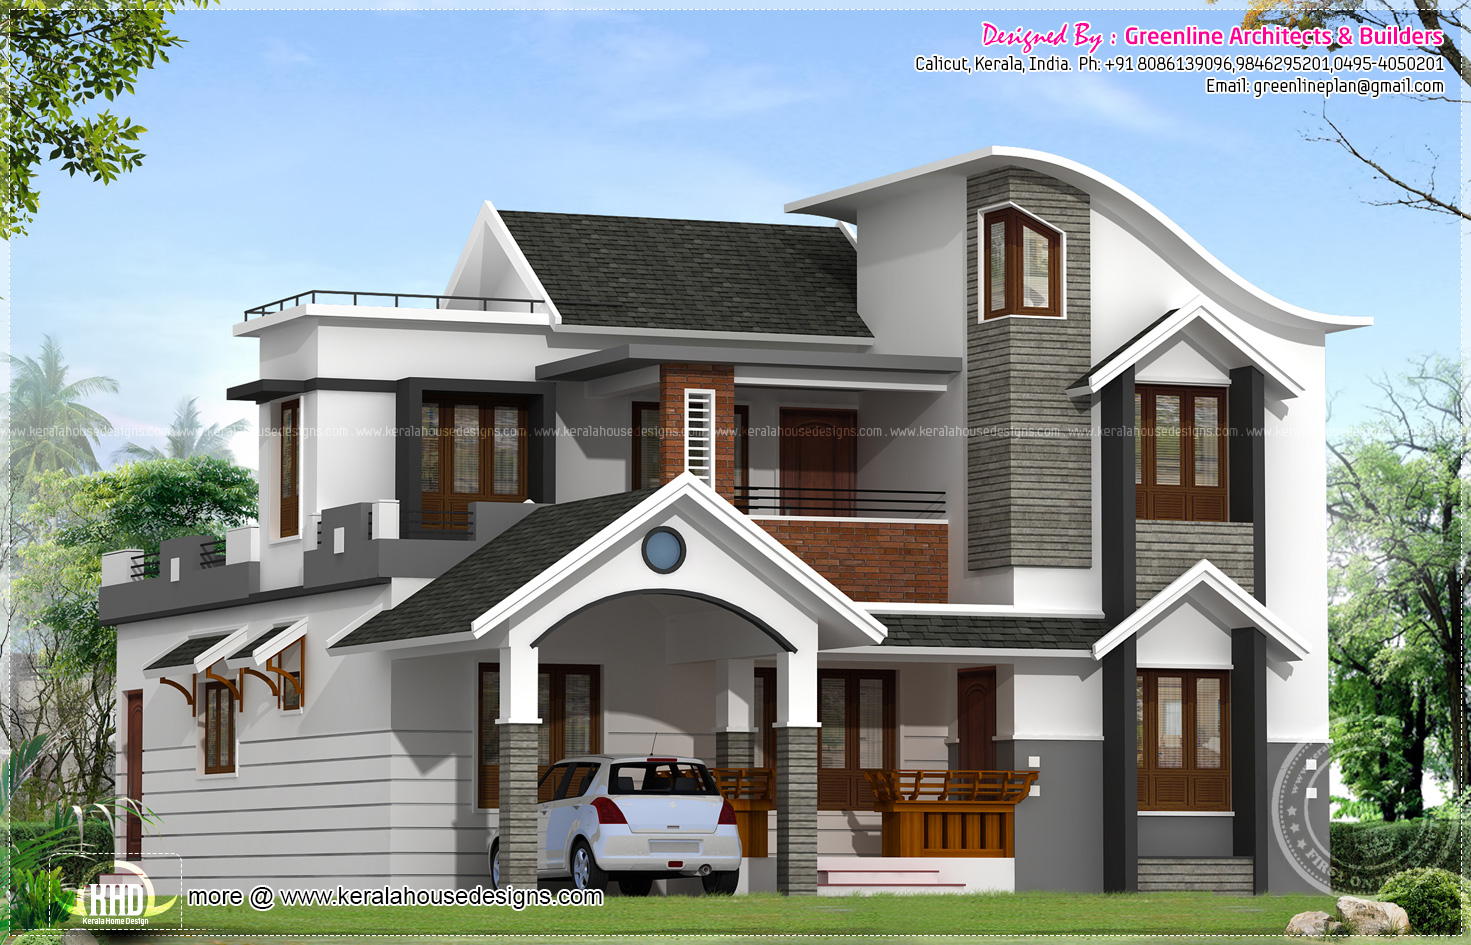 May 2013 kerala home design and floor plans for Latest kerala style home designs